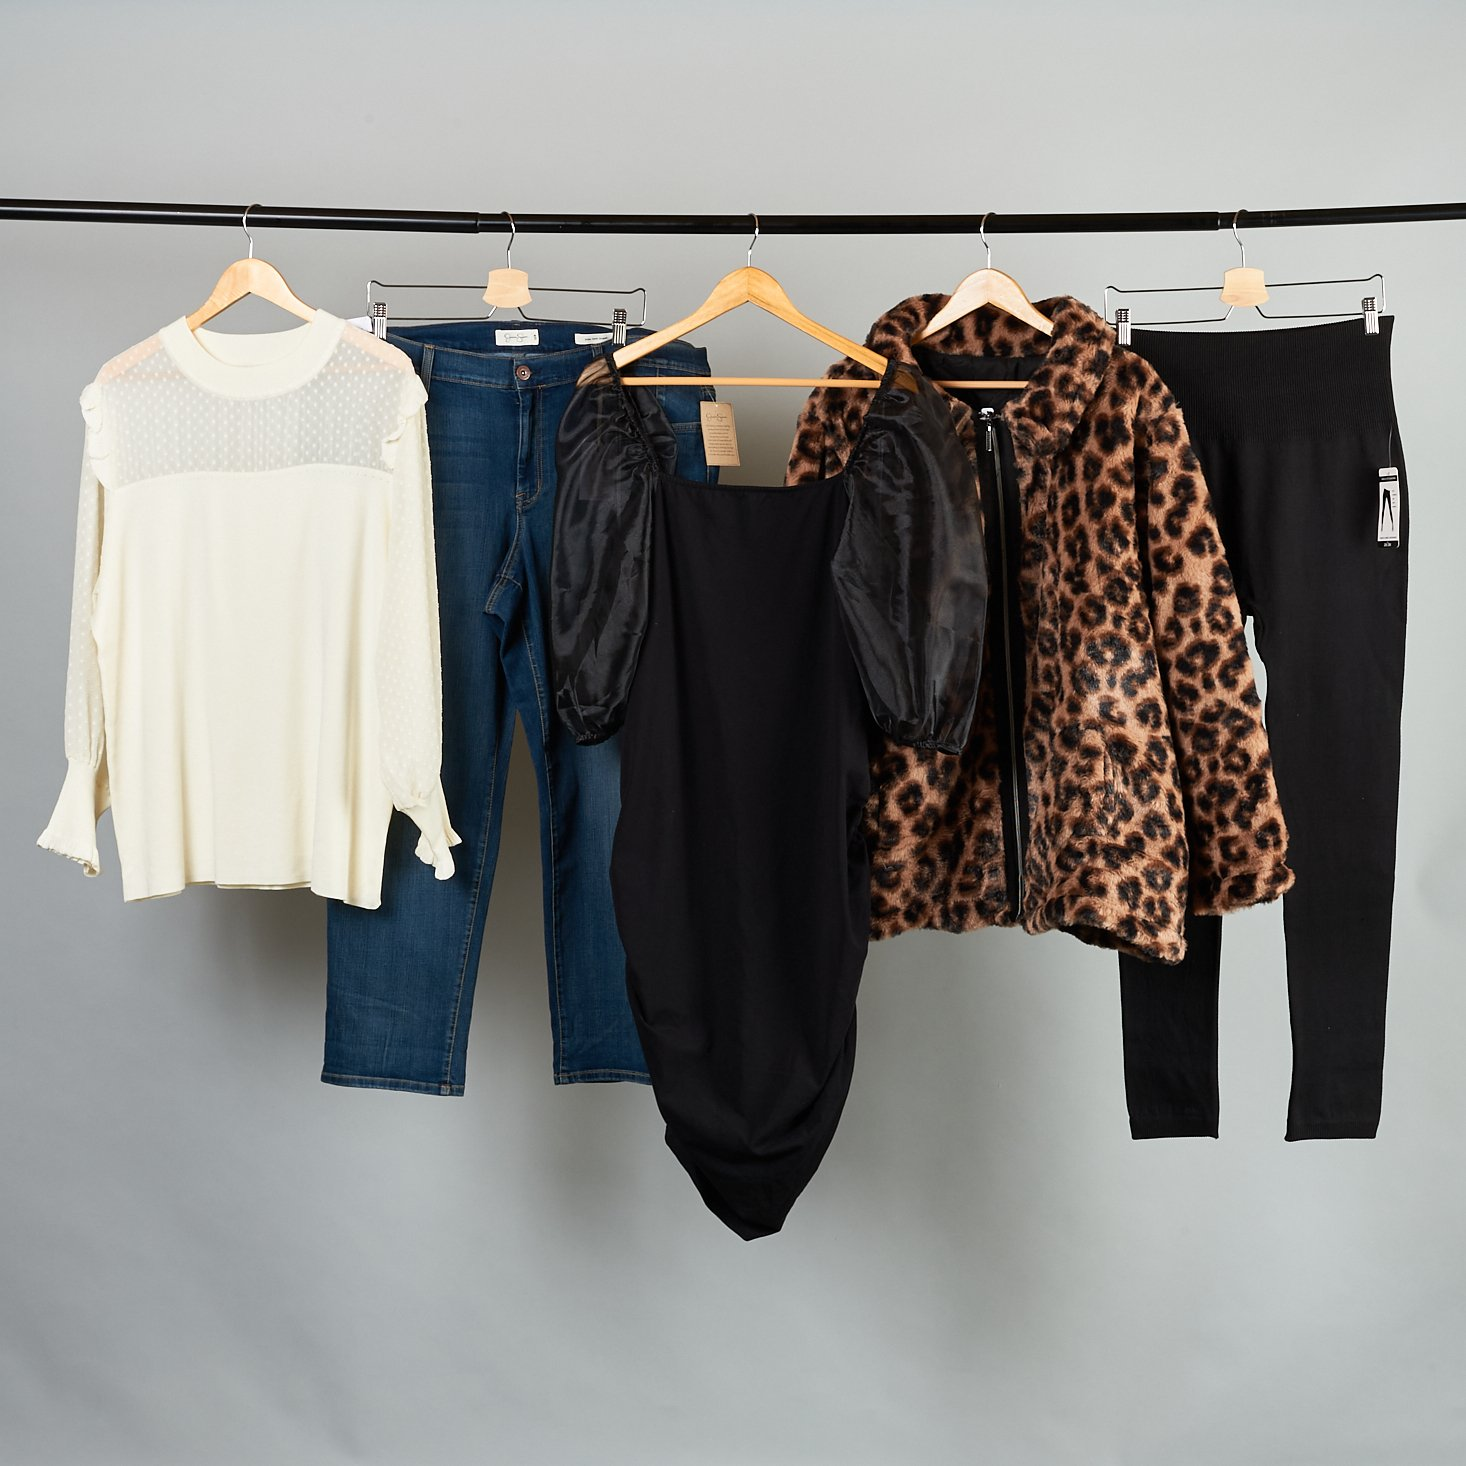 Dia & Co Clothing Box Review + Coupon – Dress, Jeans, Coat & More!